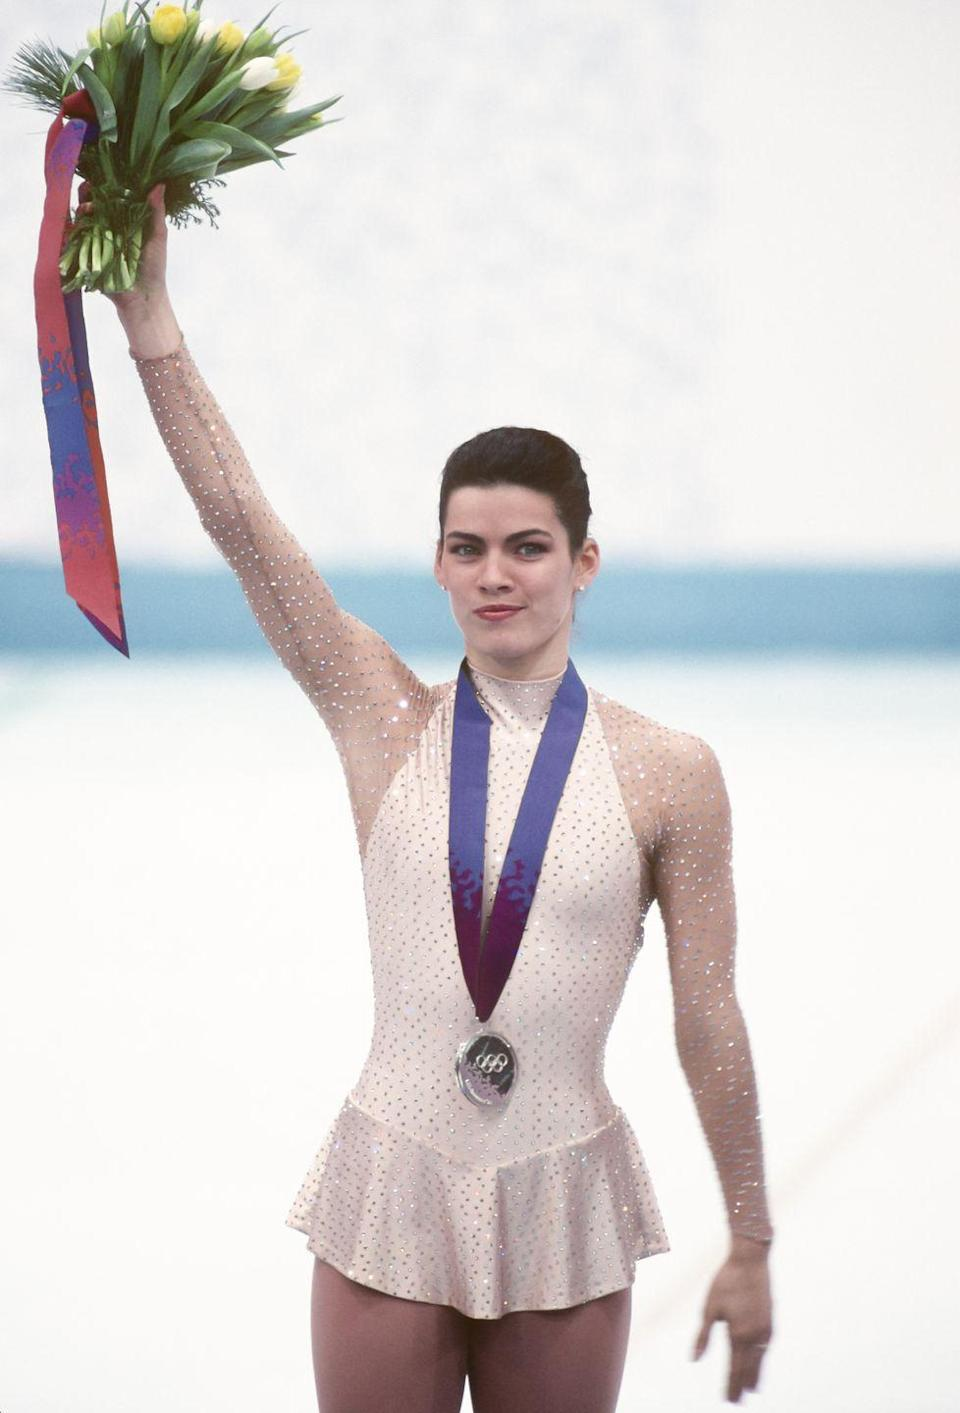 <p>In 1994, Nancy Kerrigan found herself swept up in one of the most dramatic events in figure skating history after she was struck on the leg while leaving the practice rink seven weeks before the Olympics. However the figure skating favorite made an amazing comeback and won the silver medal. Her competitor and an accomplice in the attack, Tonya Harding, competed as well, but landed in eighth place and was later banned from the sport for her involvement. </p>